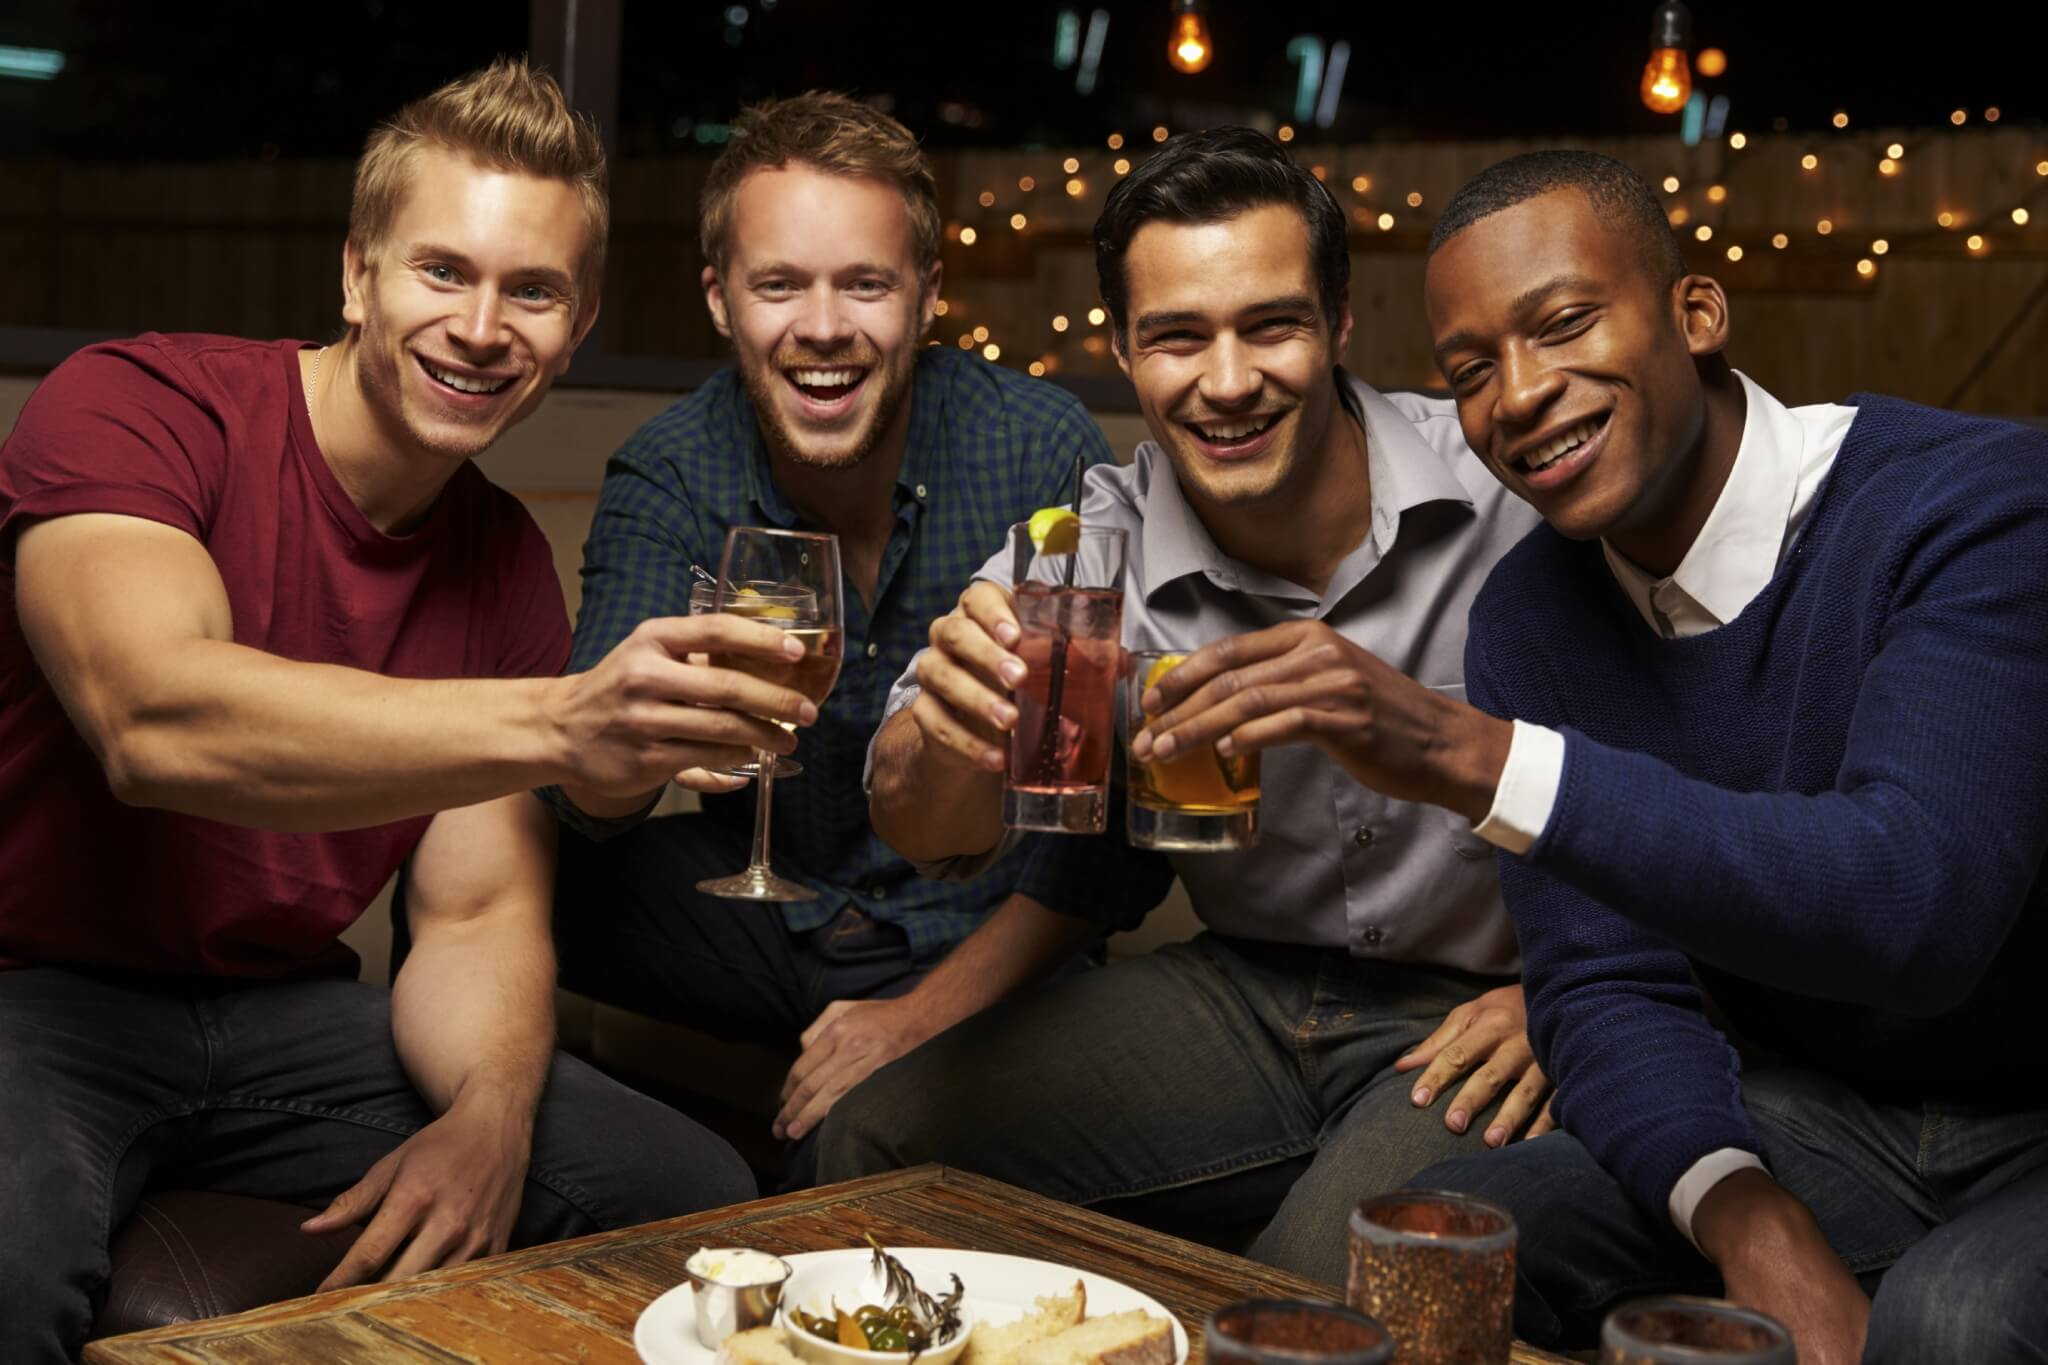 Portrait-Of-Male-Friends-Enjoying-Night-Out-At-Rooftop-Bar-000083961543_Large.jpg.jpeg